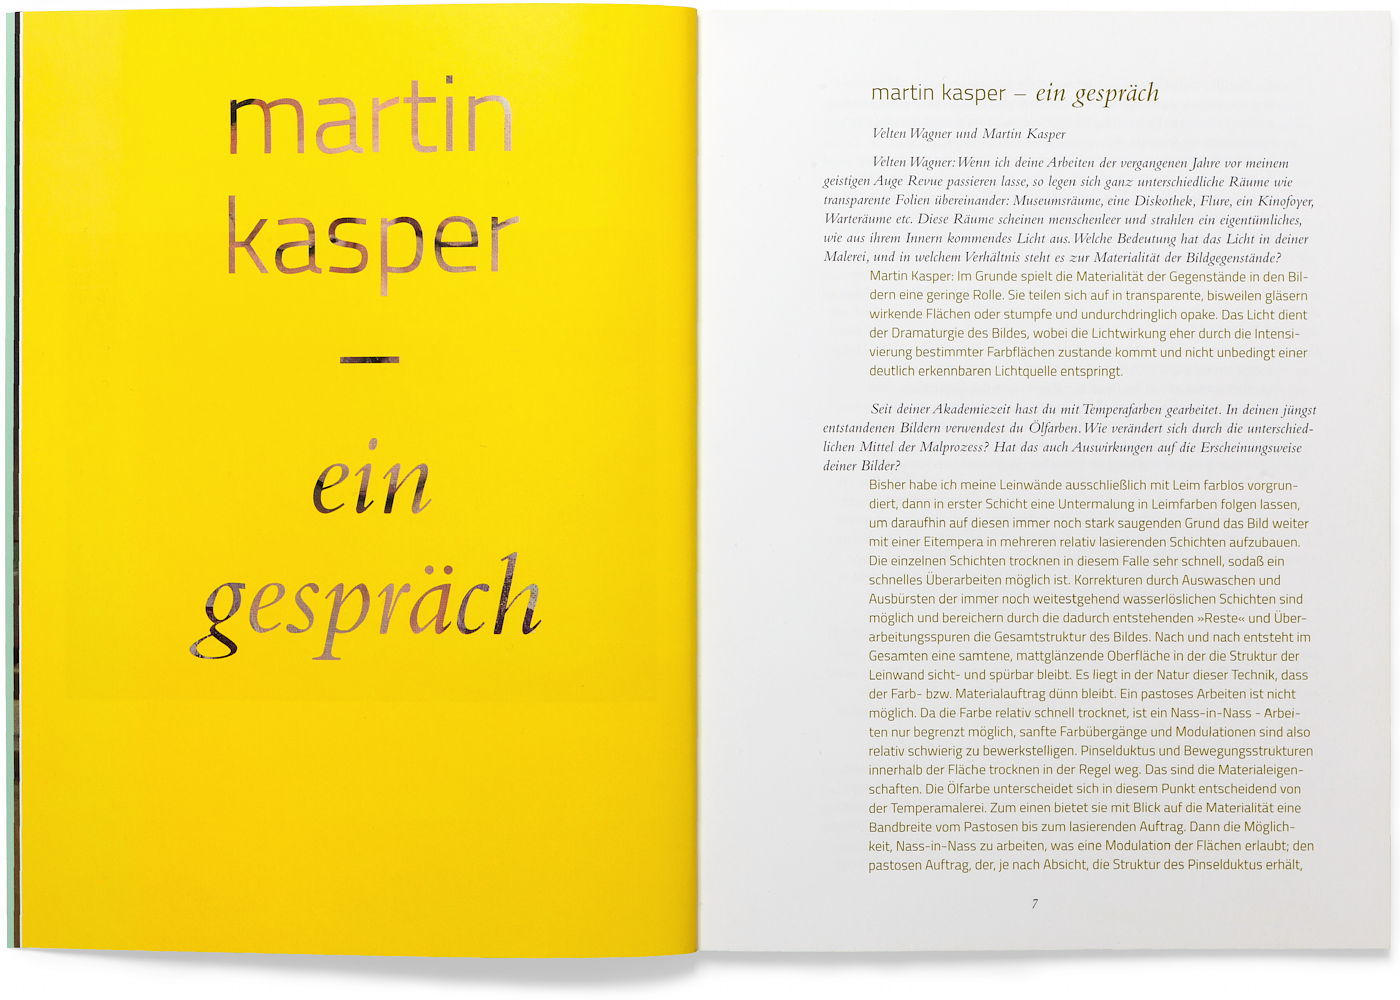 Martin Kasper Katalog Interview deutsch